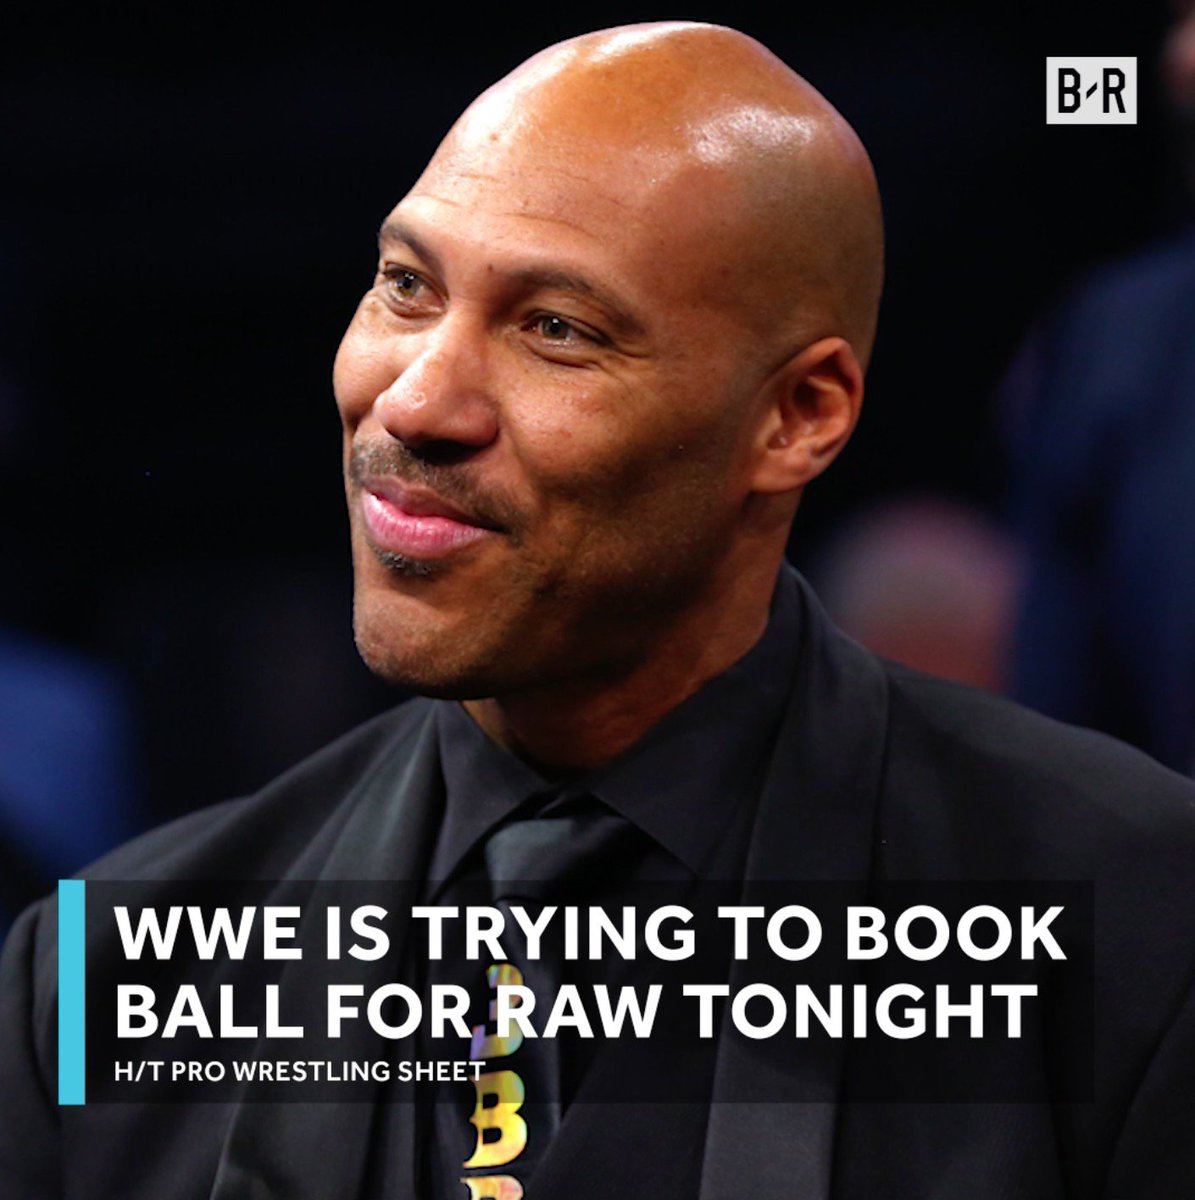 LaVar Ball on Raw would be must-see TV (➡️ @Jeep)